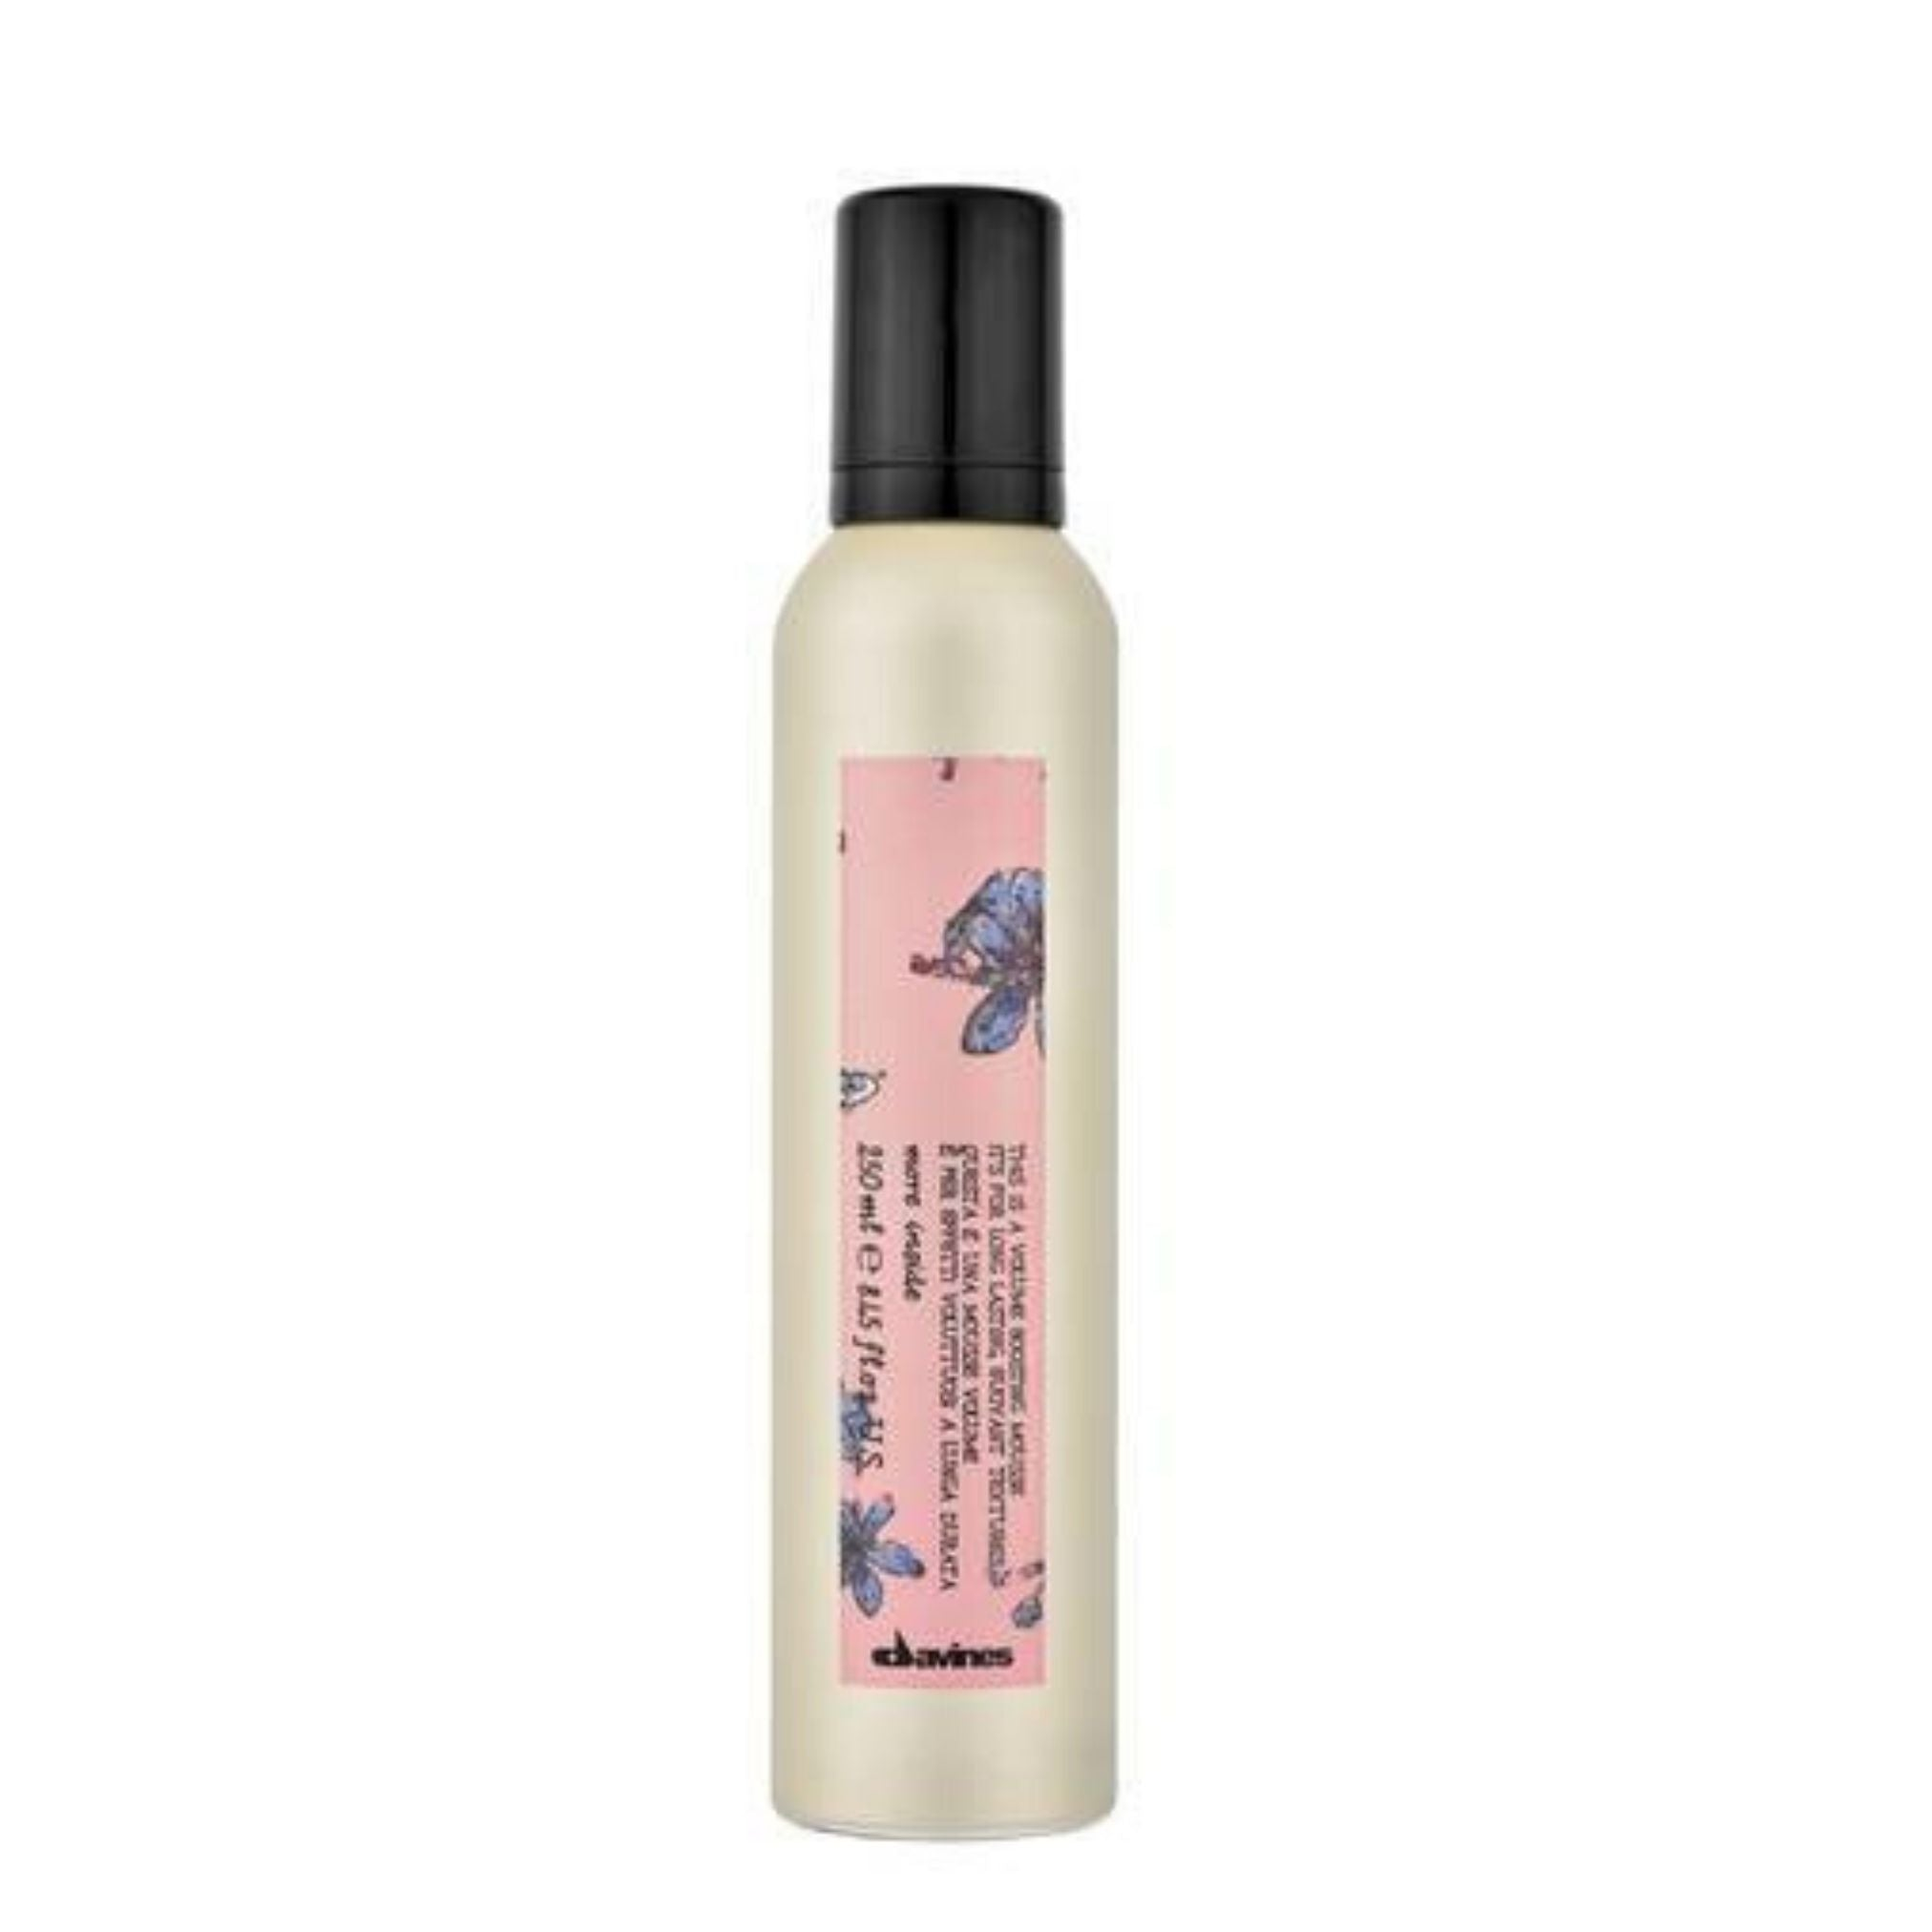 Davines Volume Boosting Mousse 250ml